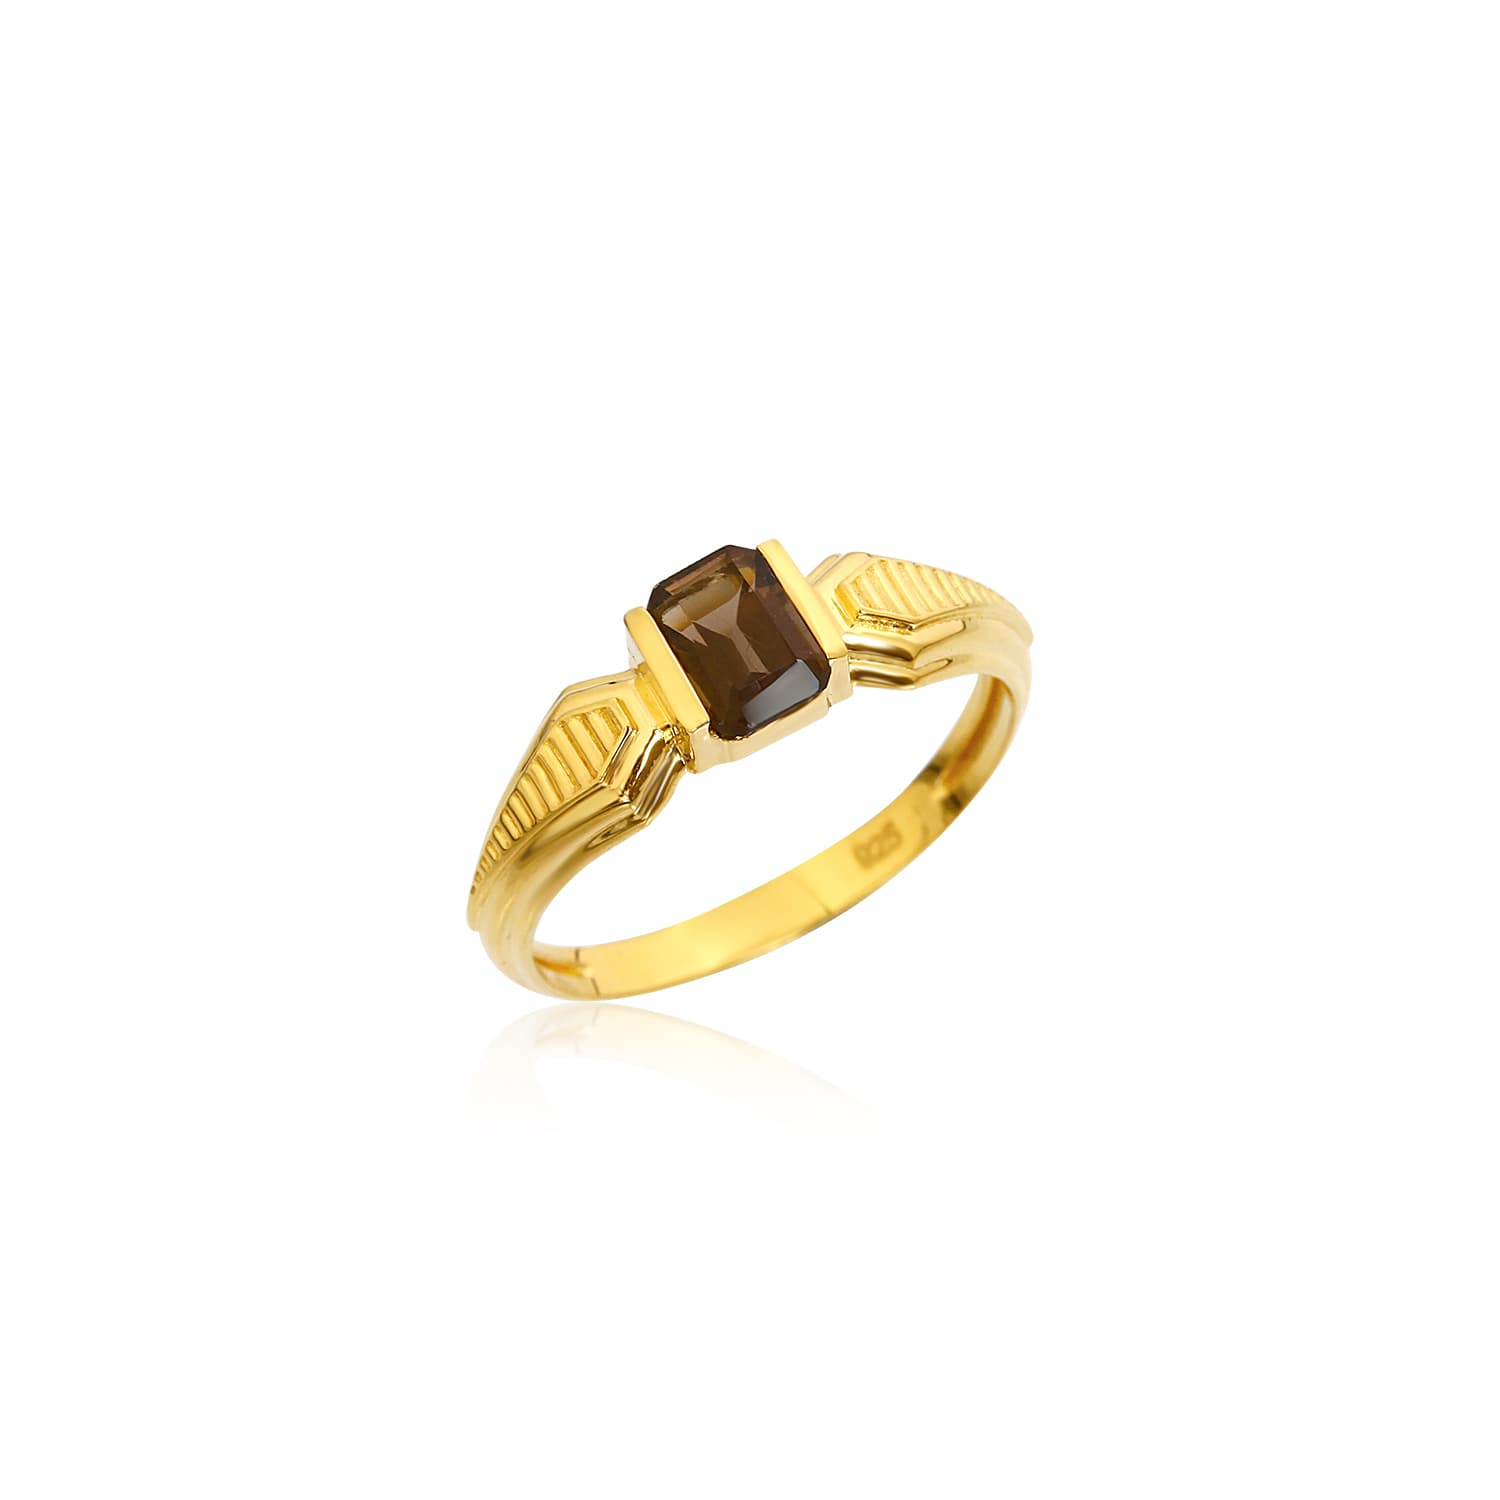 Gold plated smoky quartz ring models